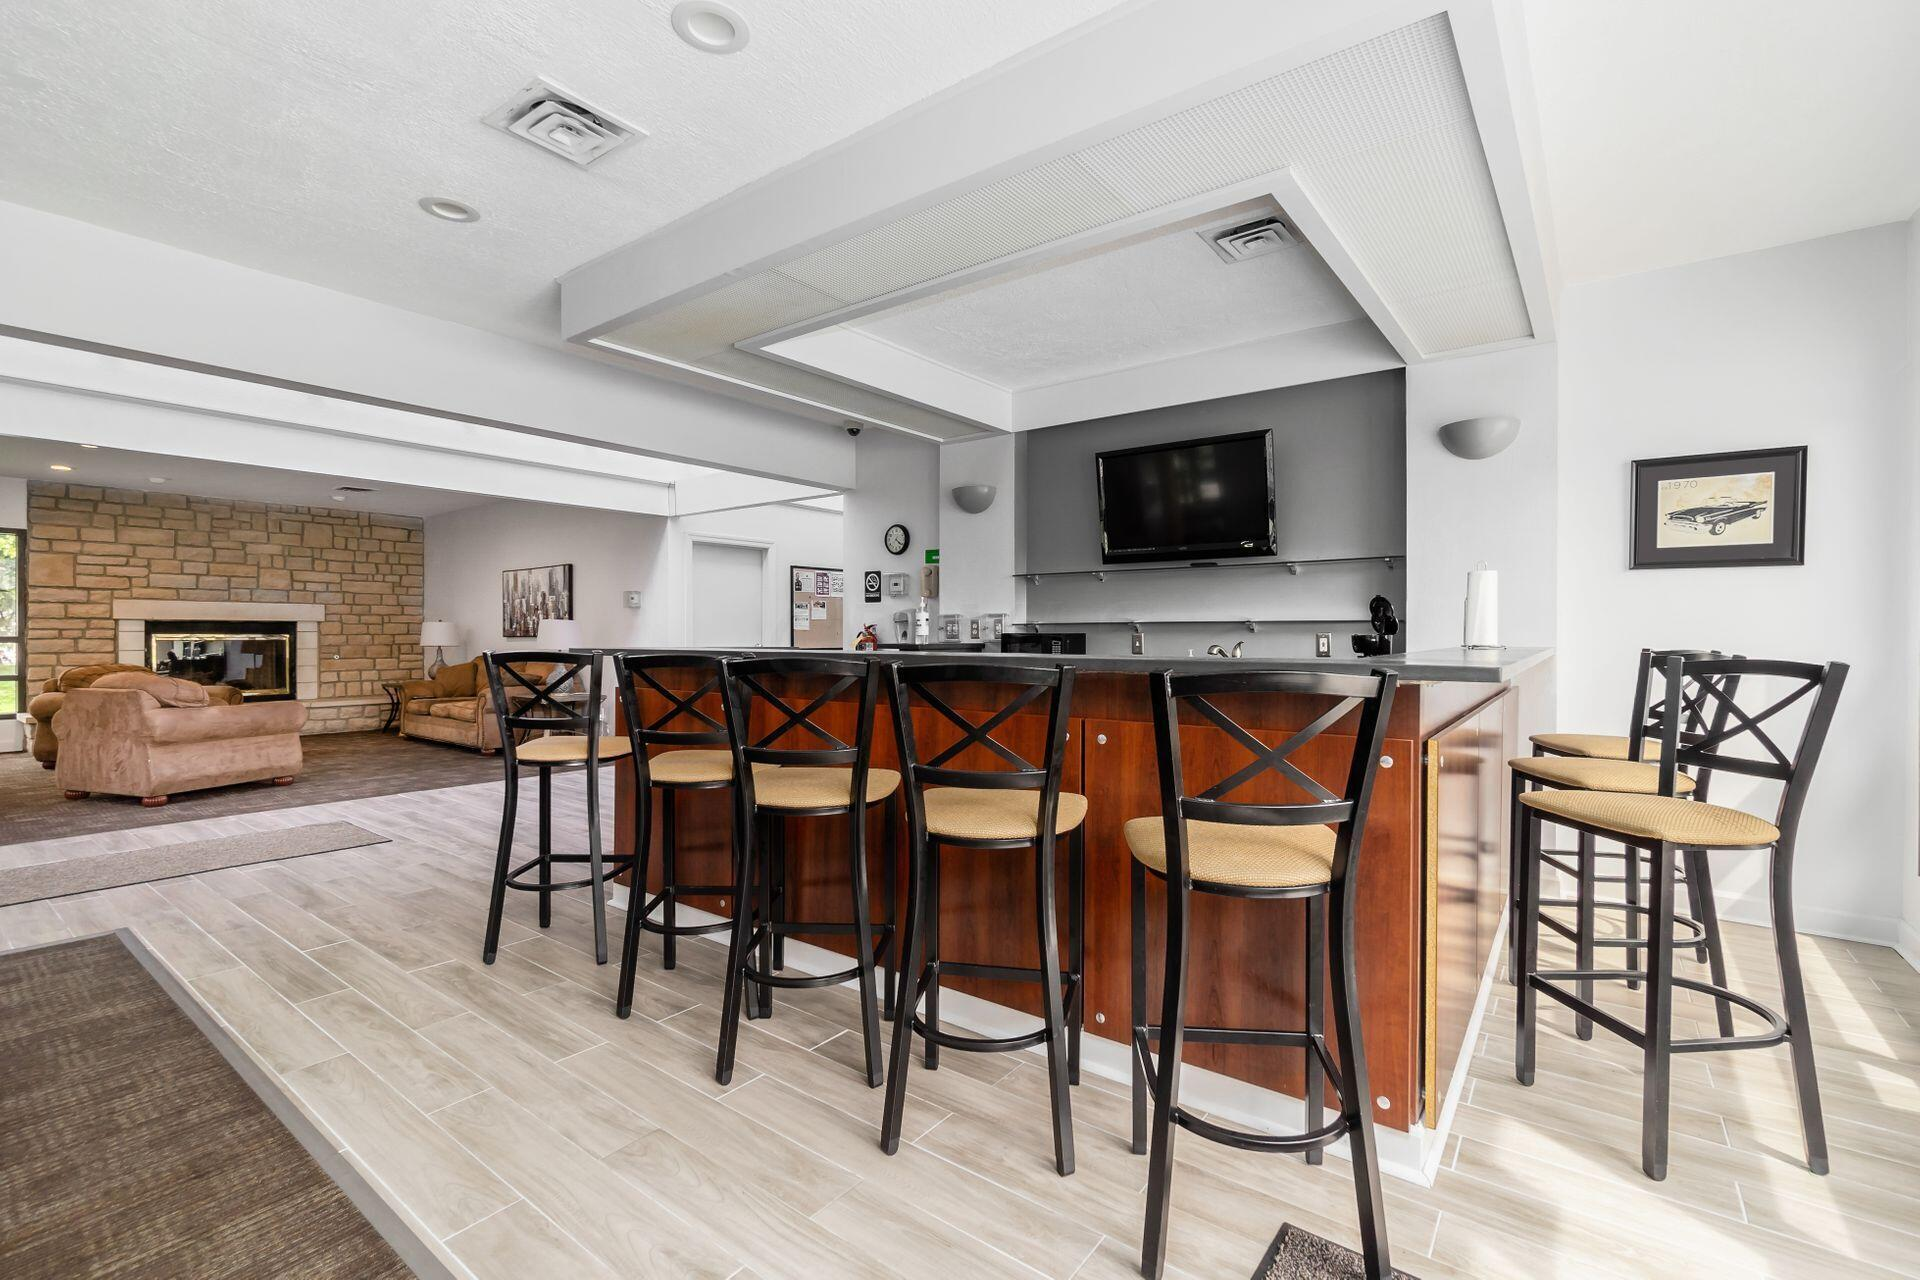 Clubhouse Kitchenette